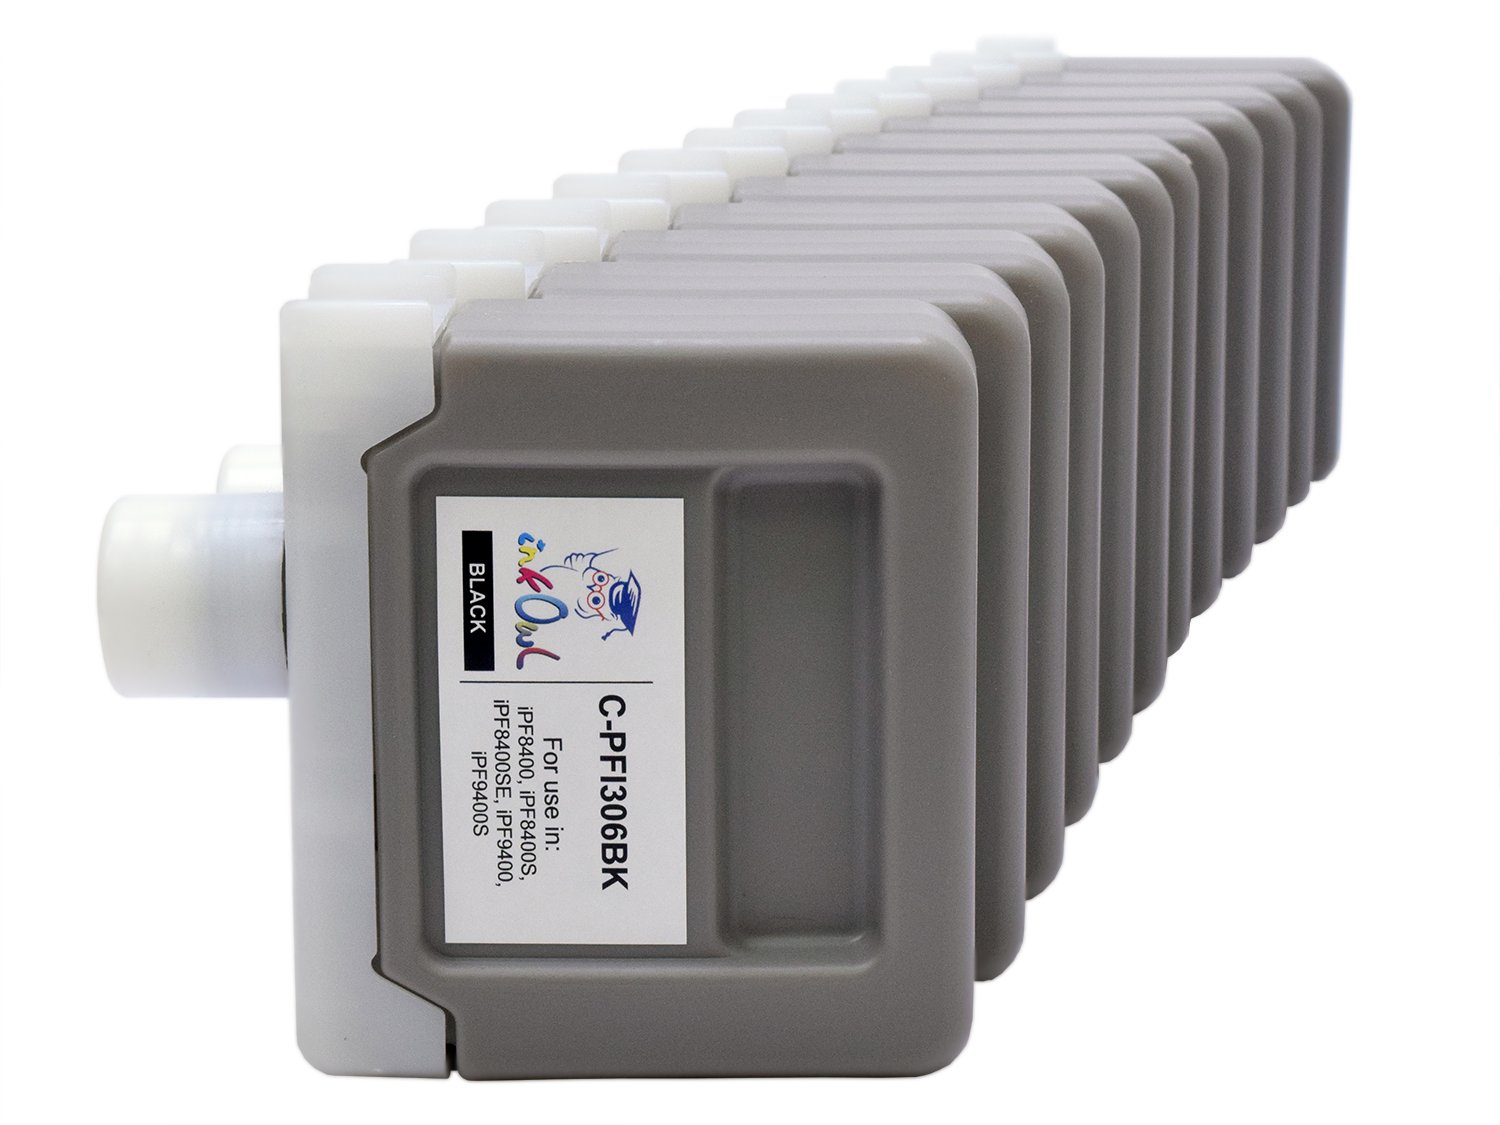 InkOwl - Compatible Ink Cartridge Replacement for CANON PFI-306 (330ml, 12-pack) for iPF8400, iPF9400 printers